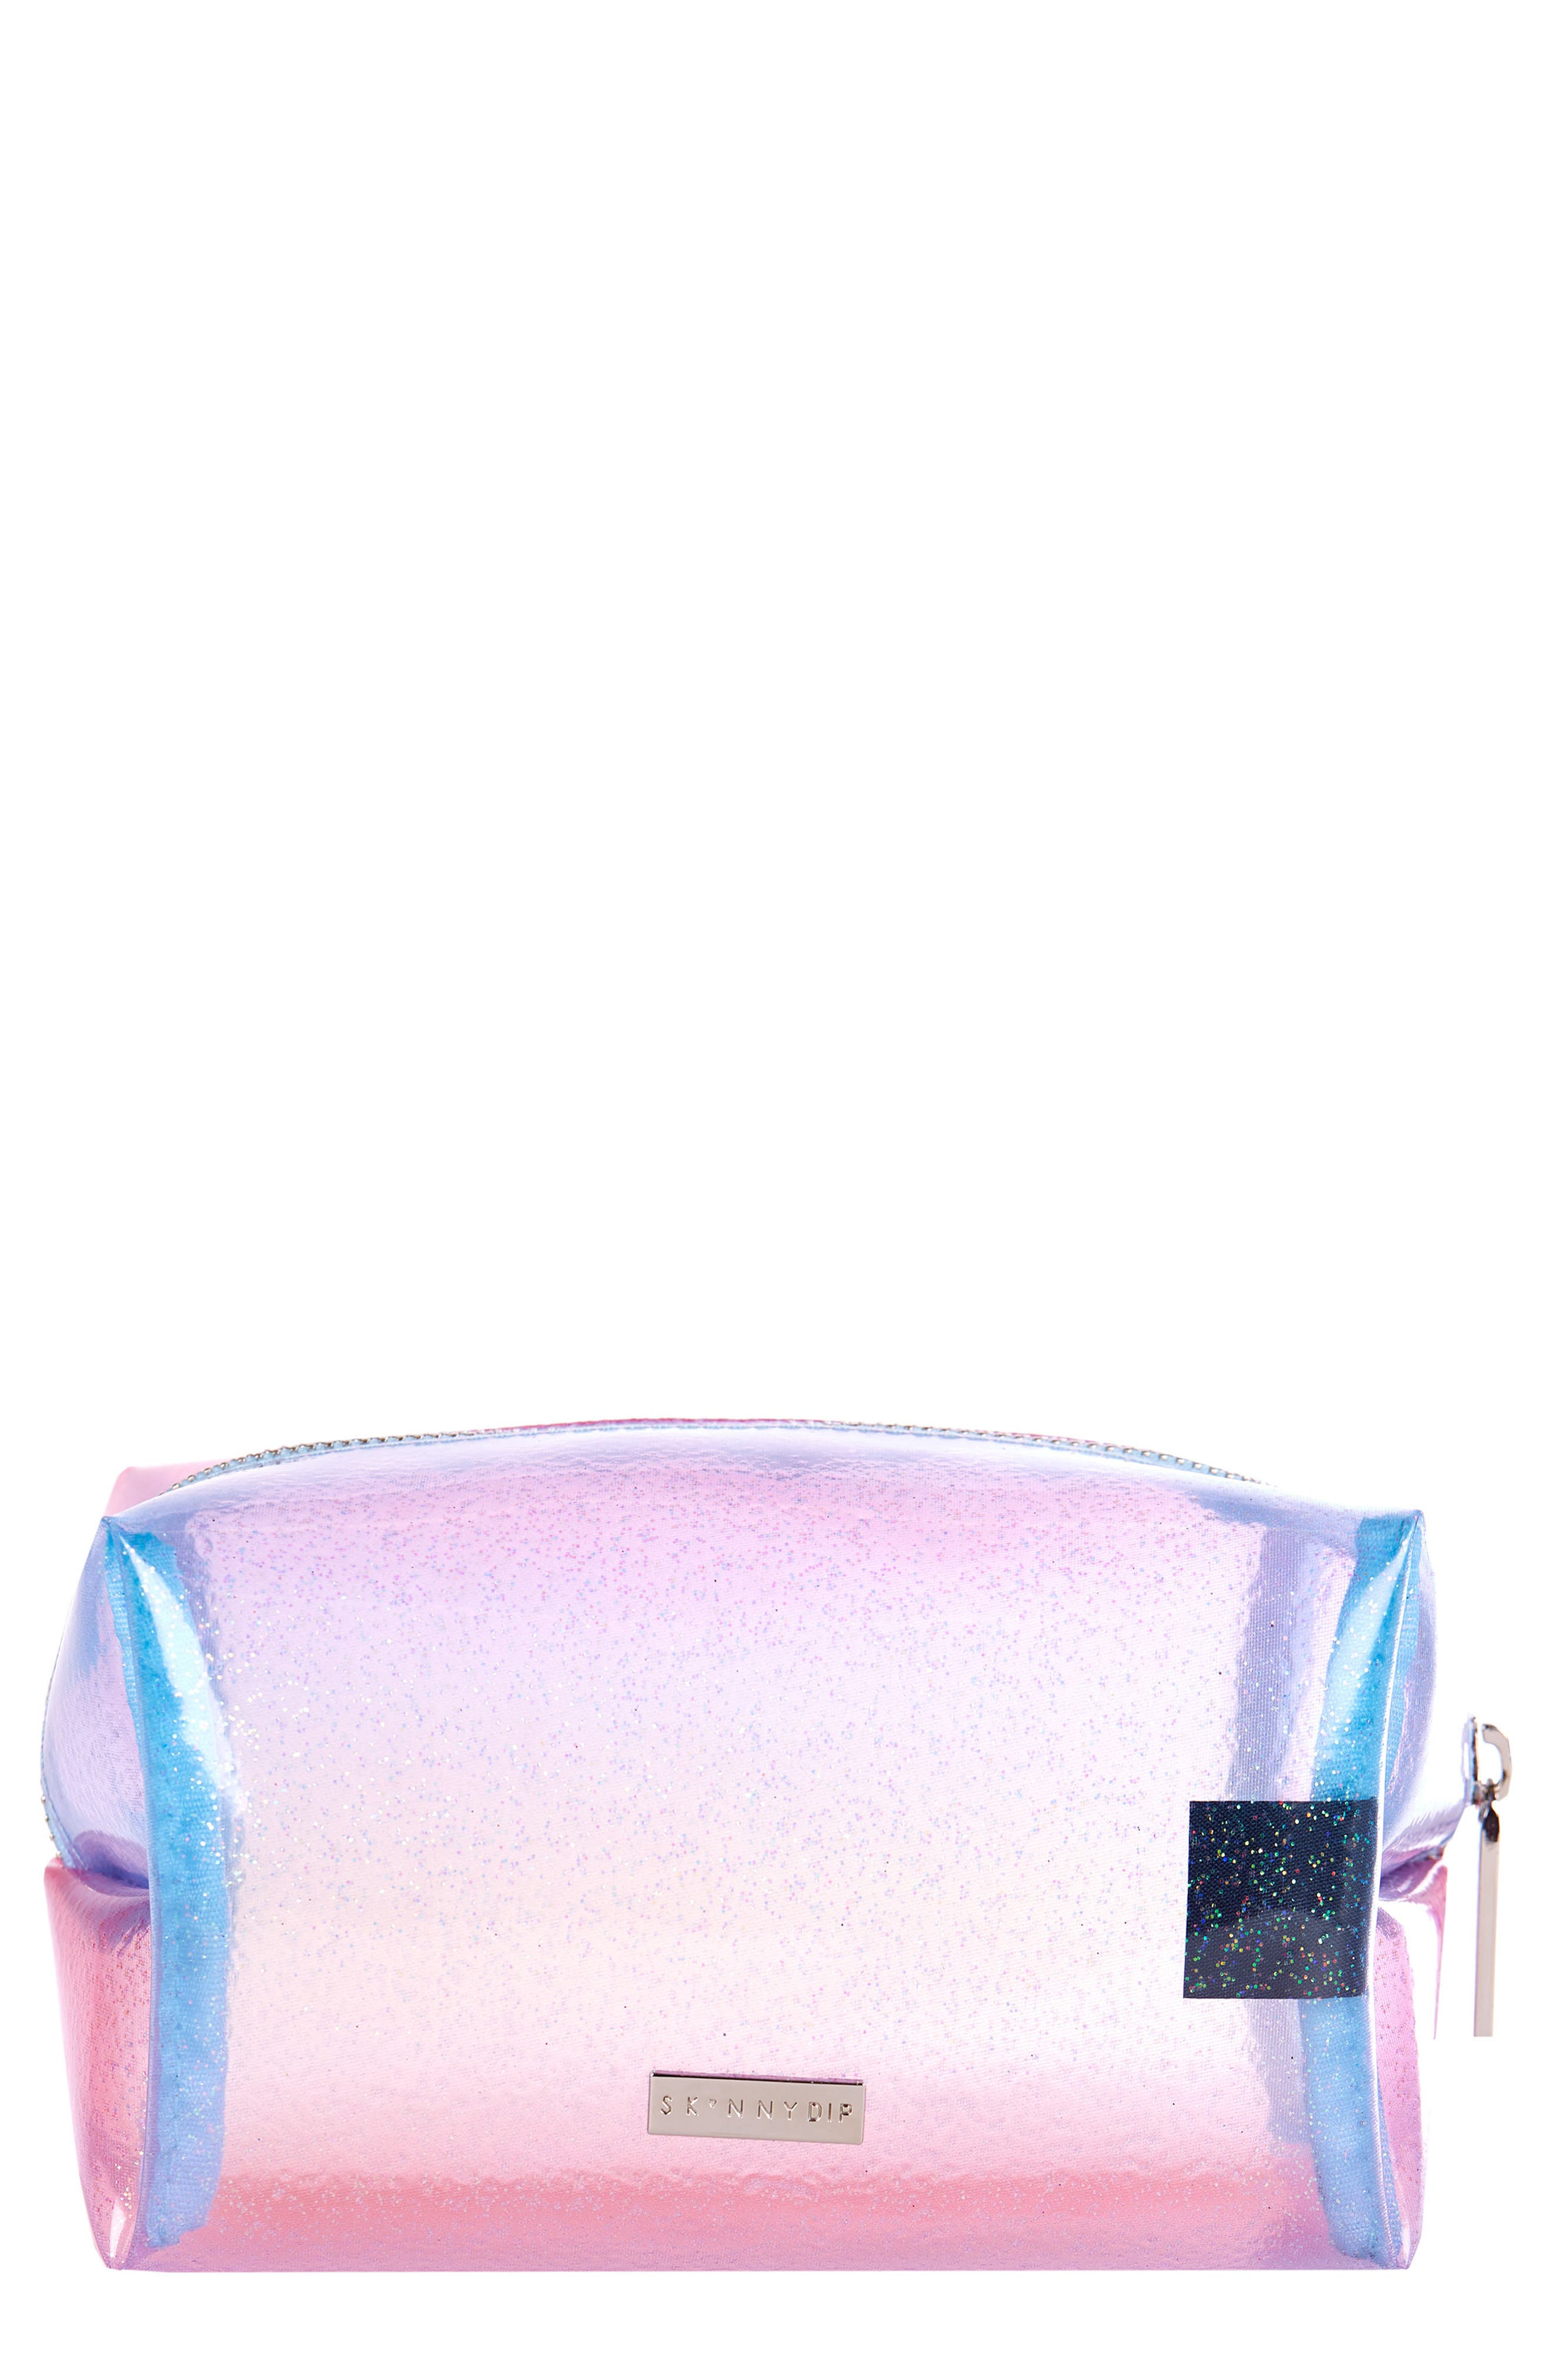 Skinny Dip Sunset Cosmetics Case,                         Main,                         color, NO COLOR